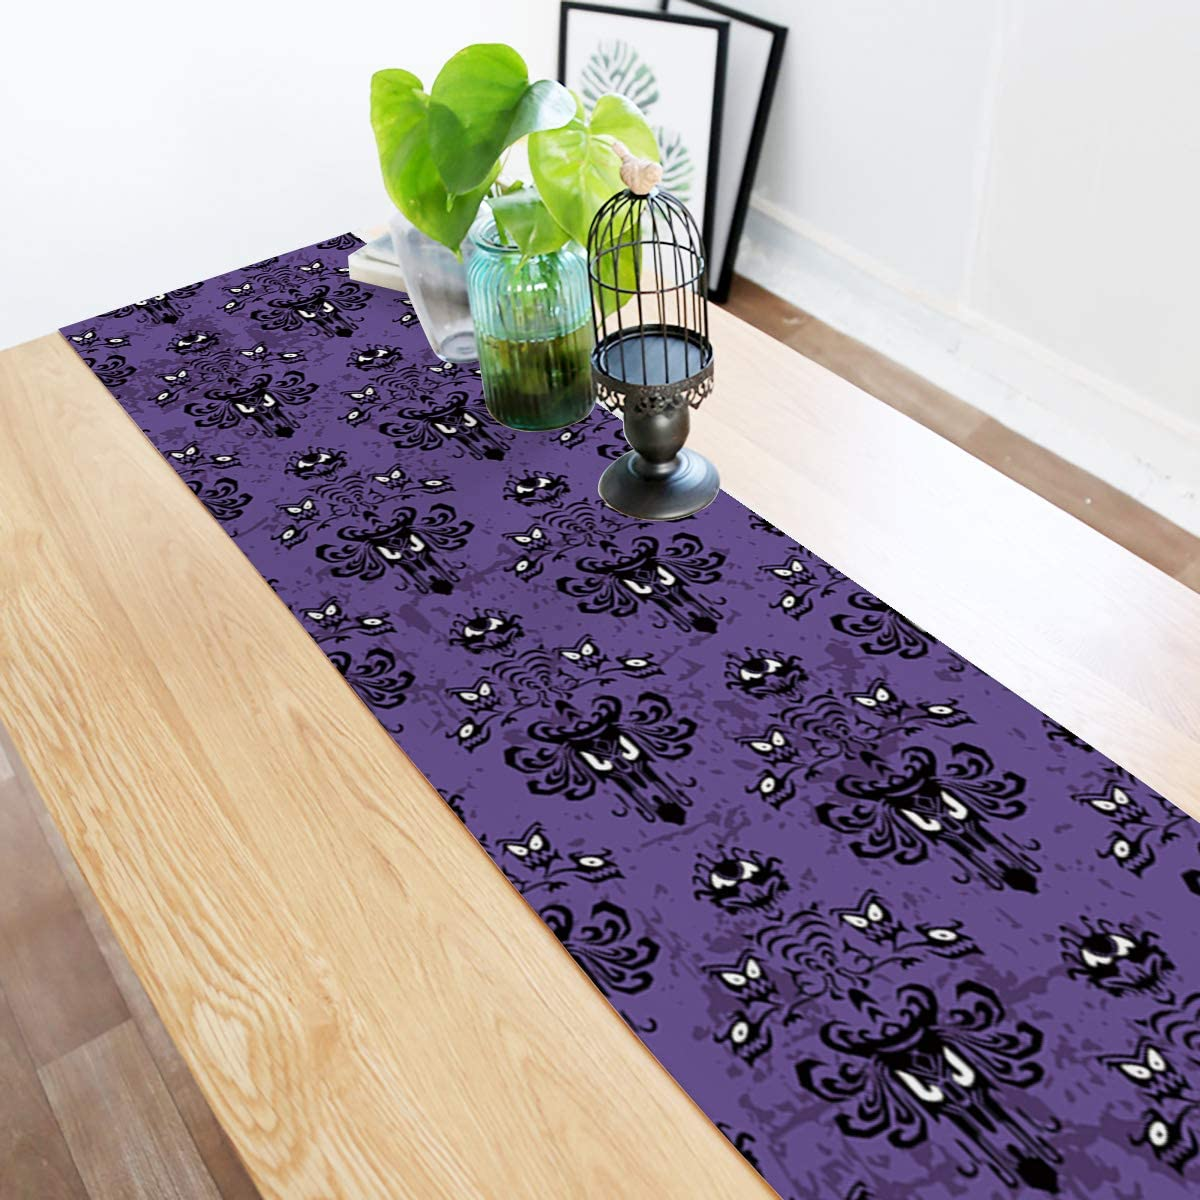 ARTSHOWING Halloween Table Runner Party Supplies Fabric Decorations for Wedding Birthday Baby Shower 13x70inch Haunted Mansion